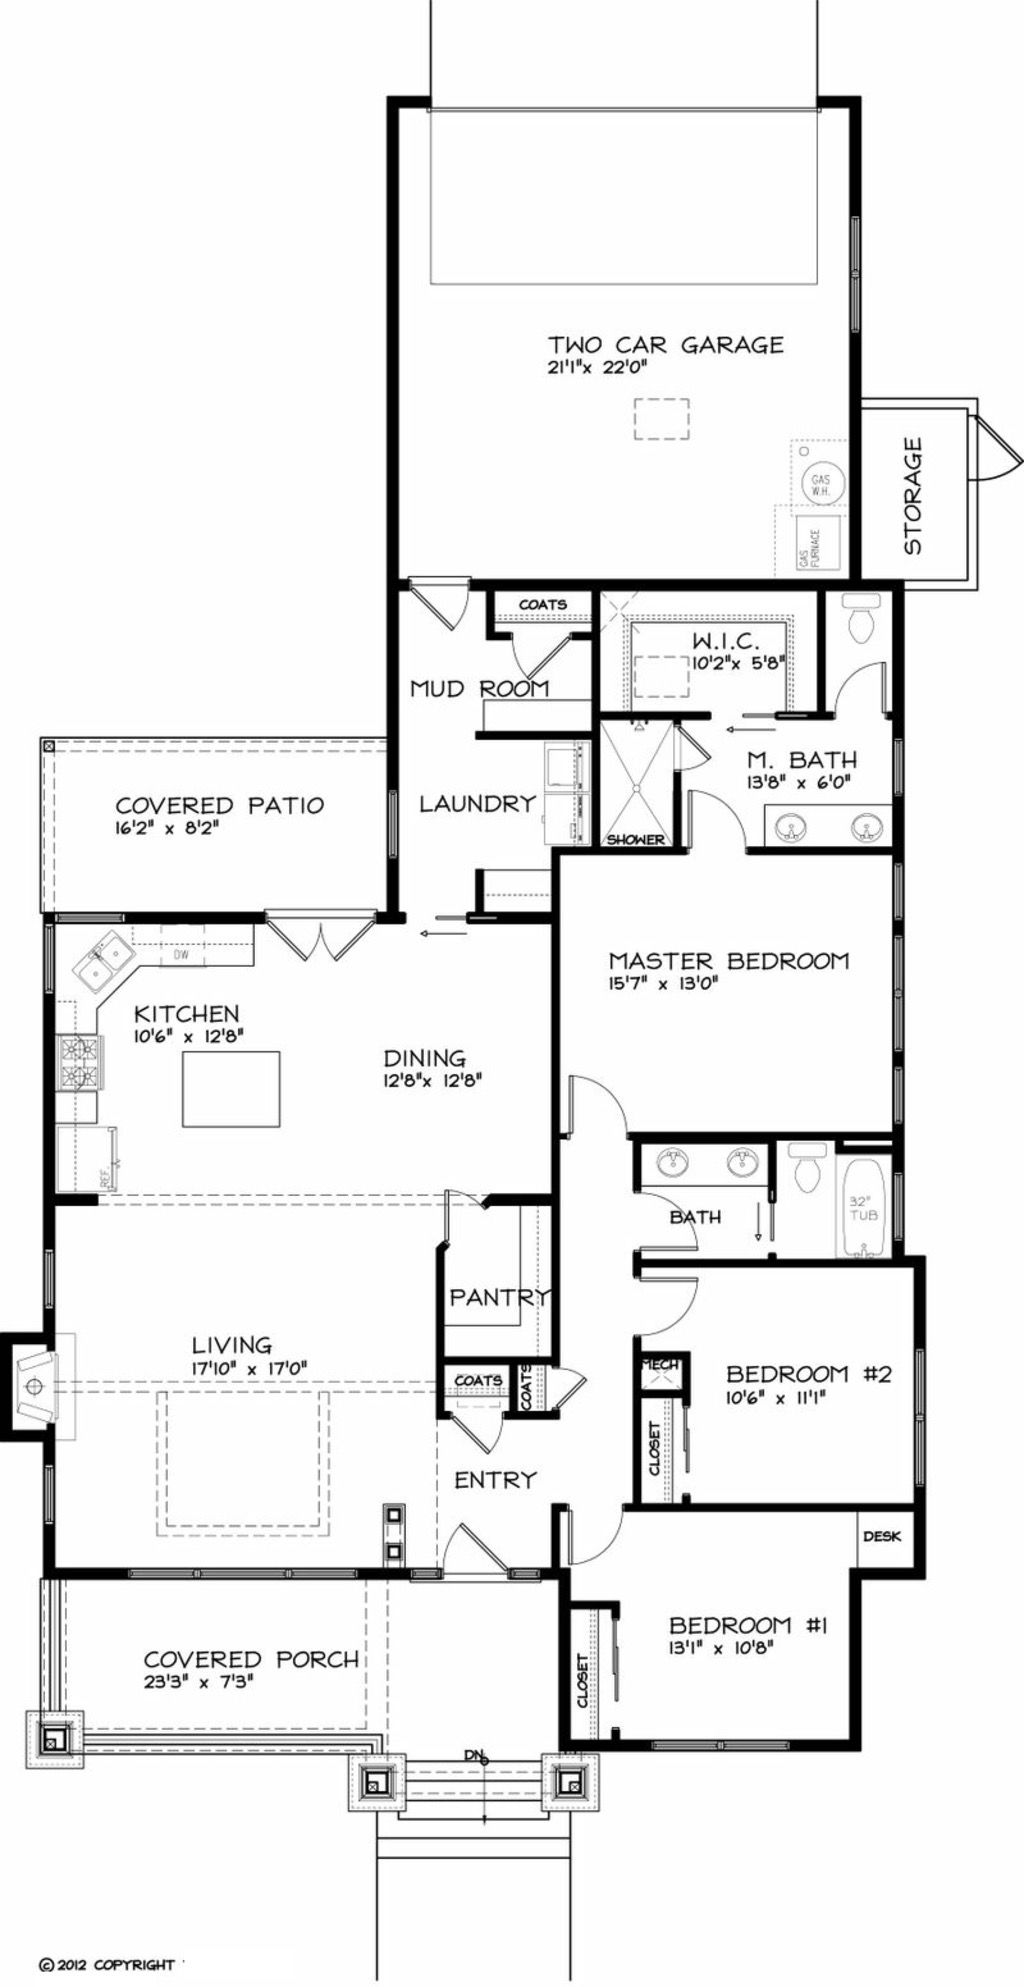 Pin by Wendy Ward on house plans | Pinterest | House, Feng shui and ...